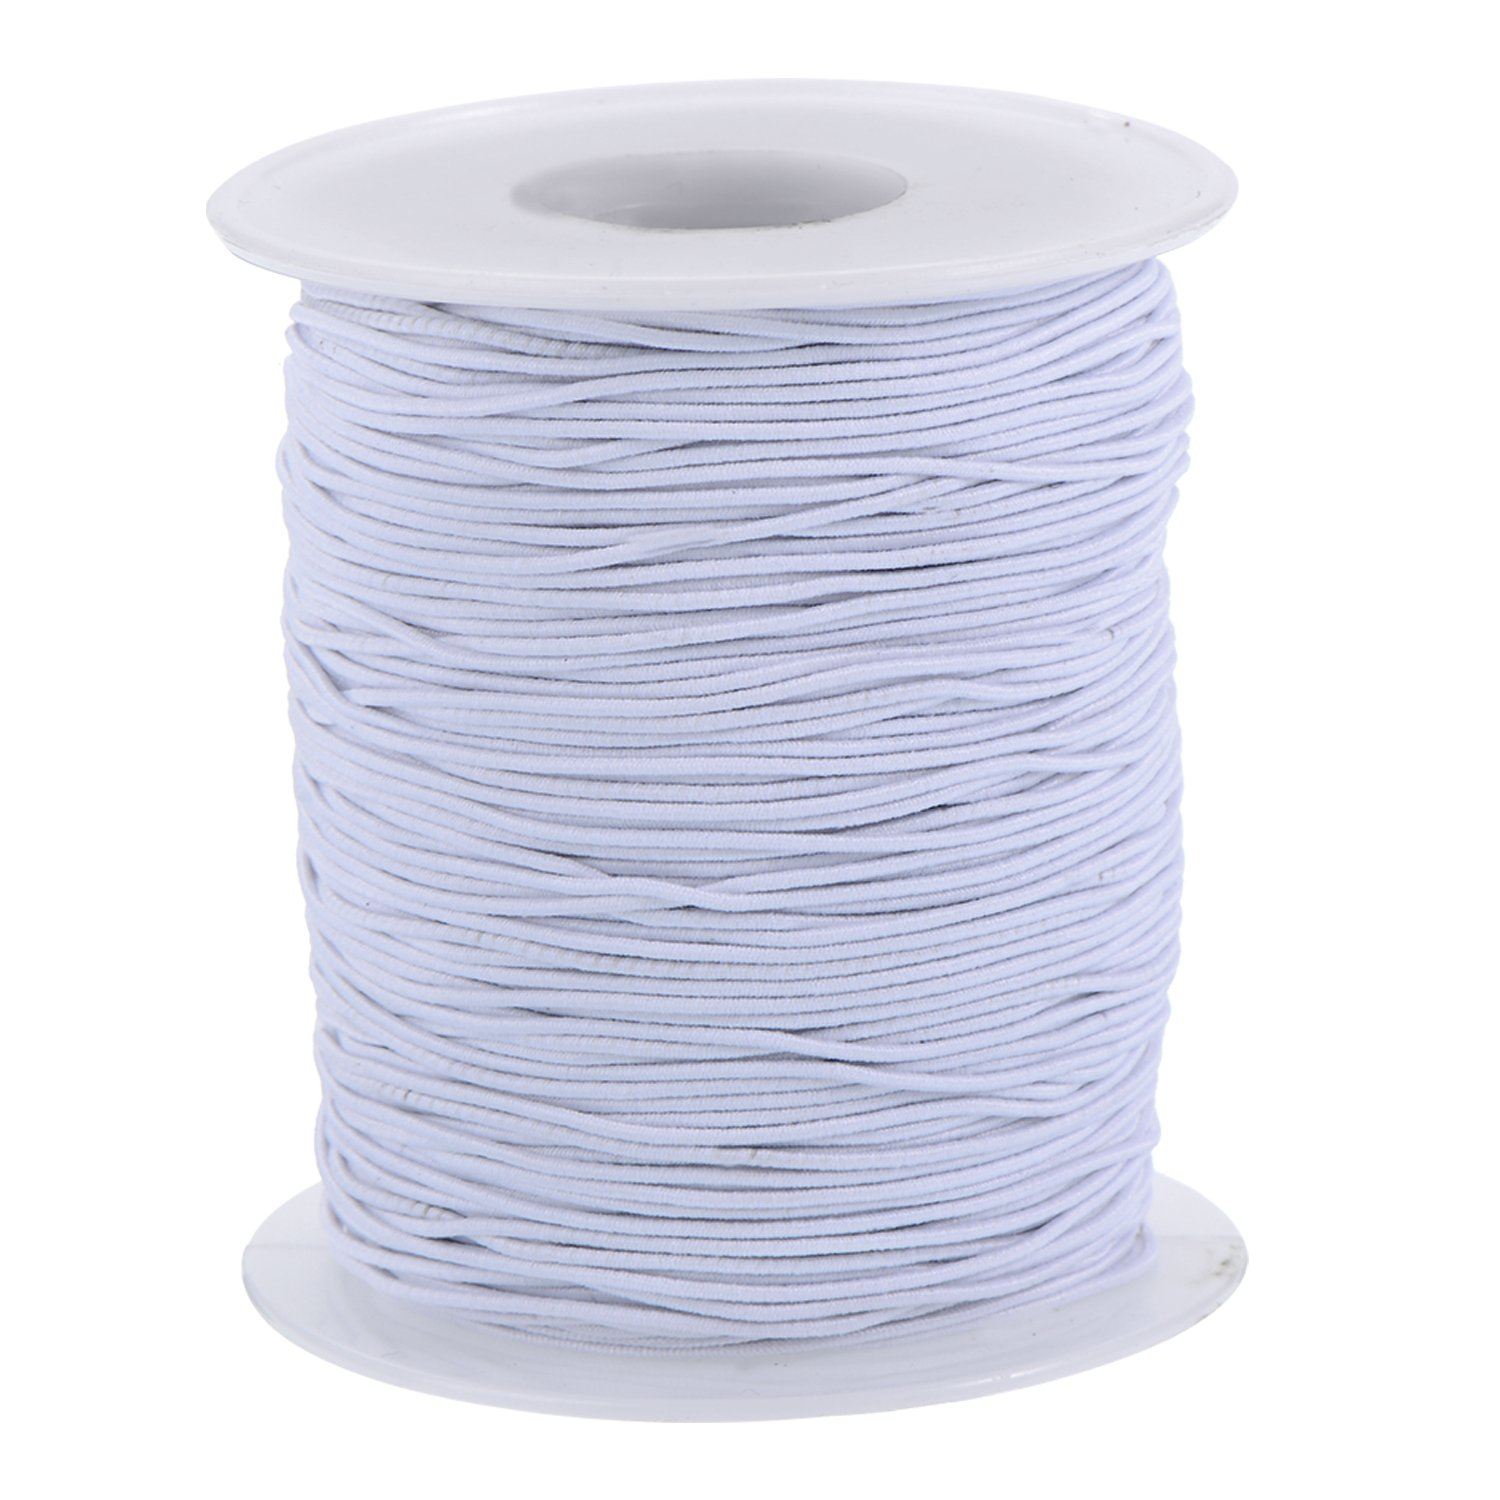 Outus Elastic Cord Stretch Thread Beading Cord Fabric Crafting String, 0.8 mm, White (200 Meters)